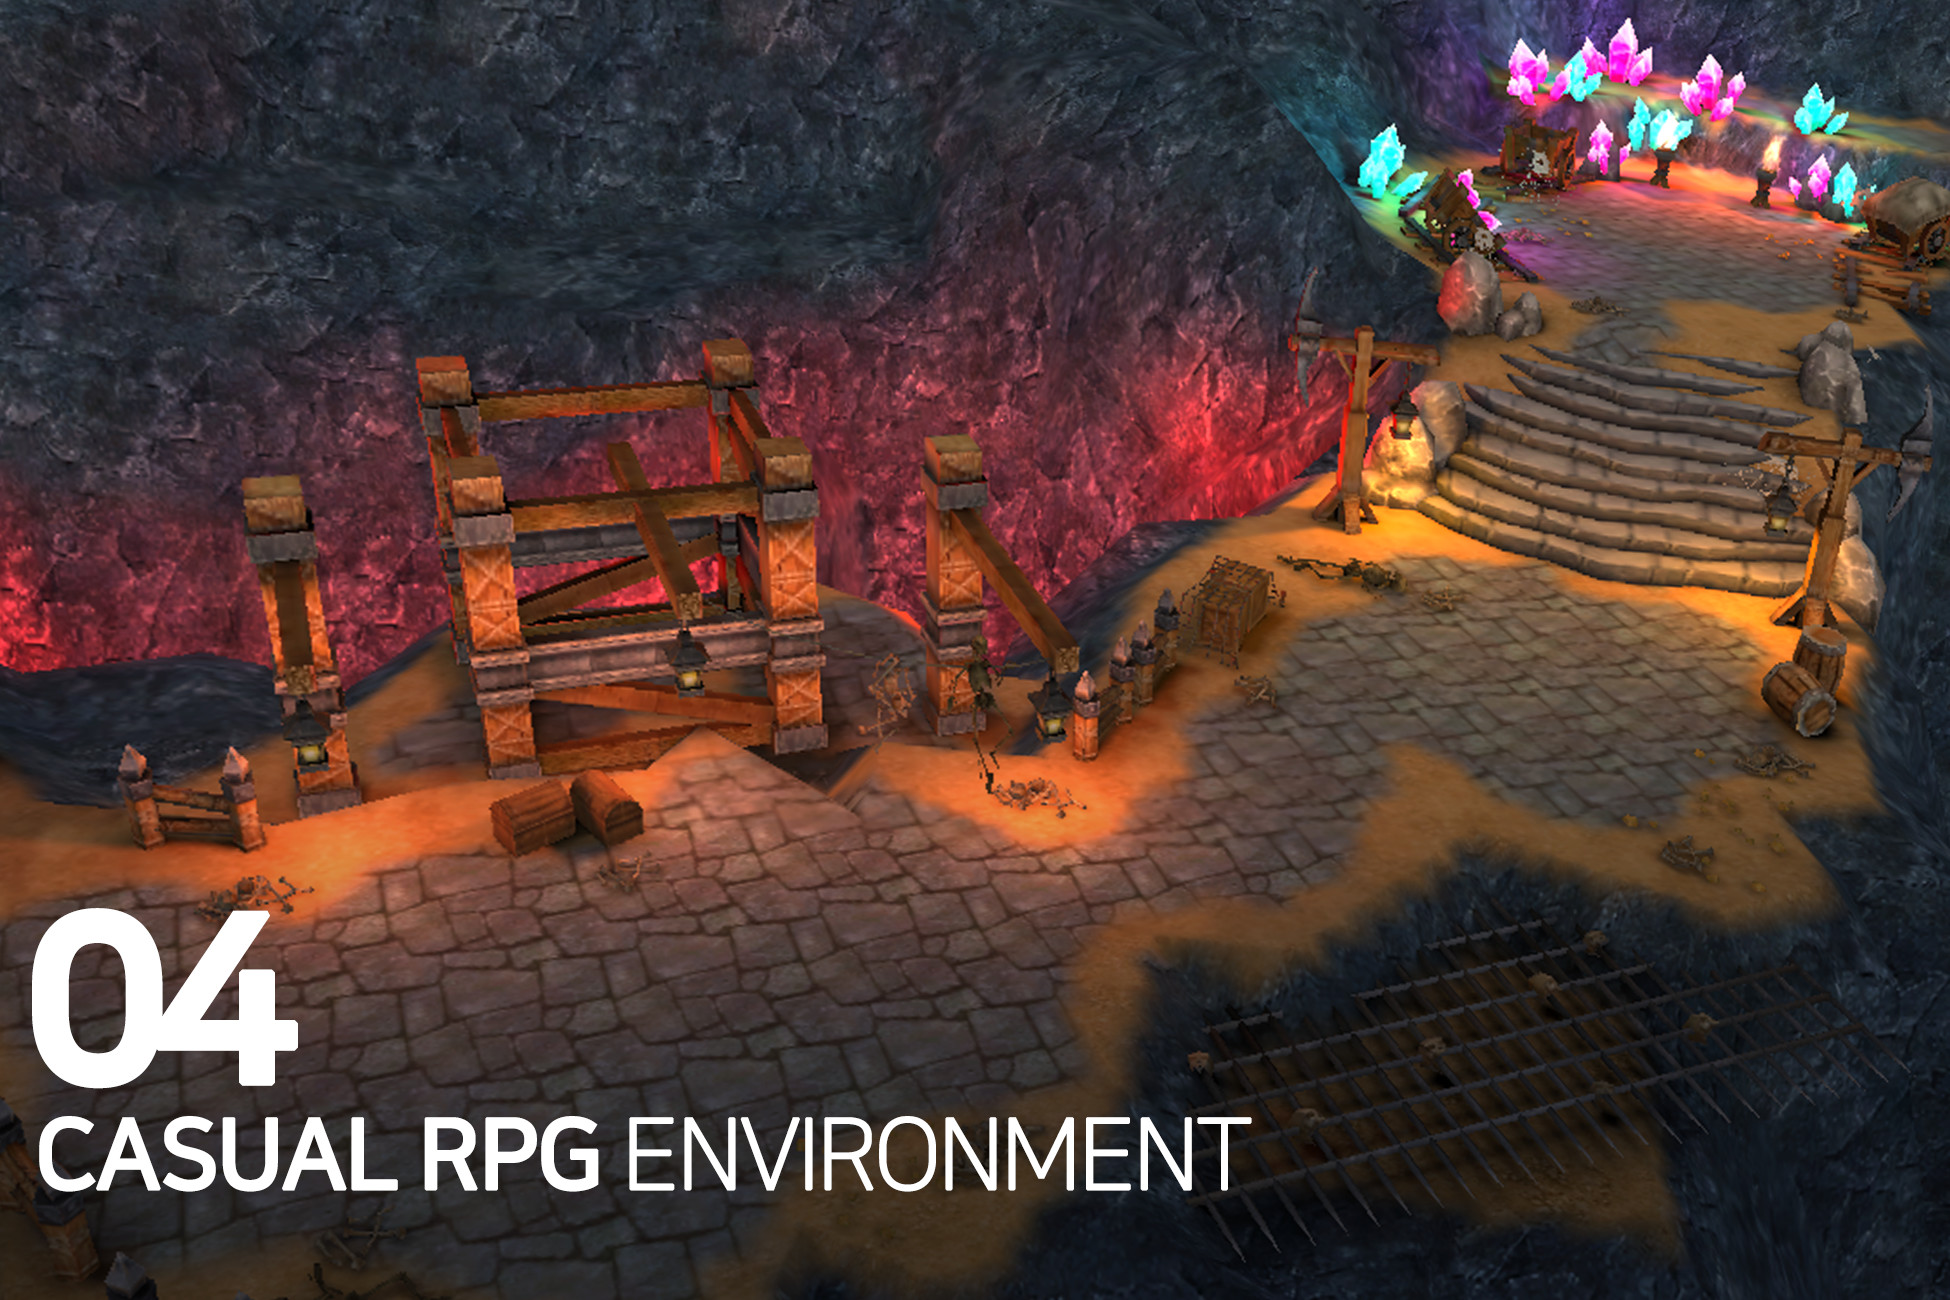 Casual RPG Environment 04